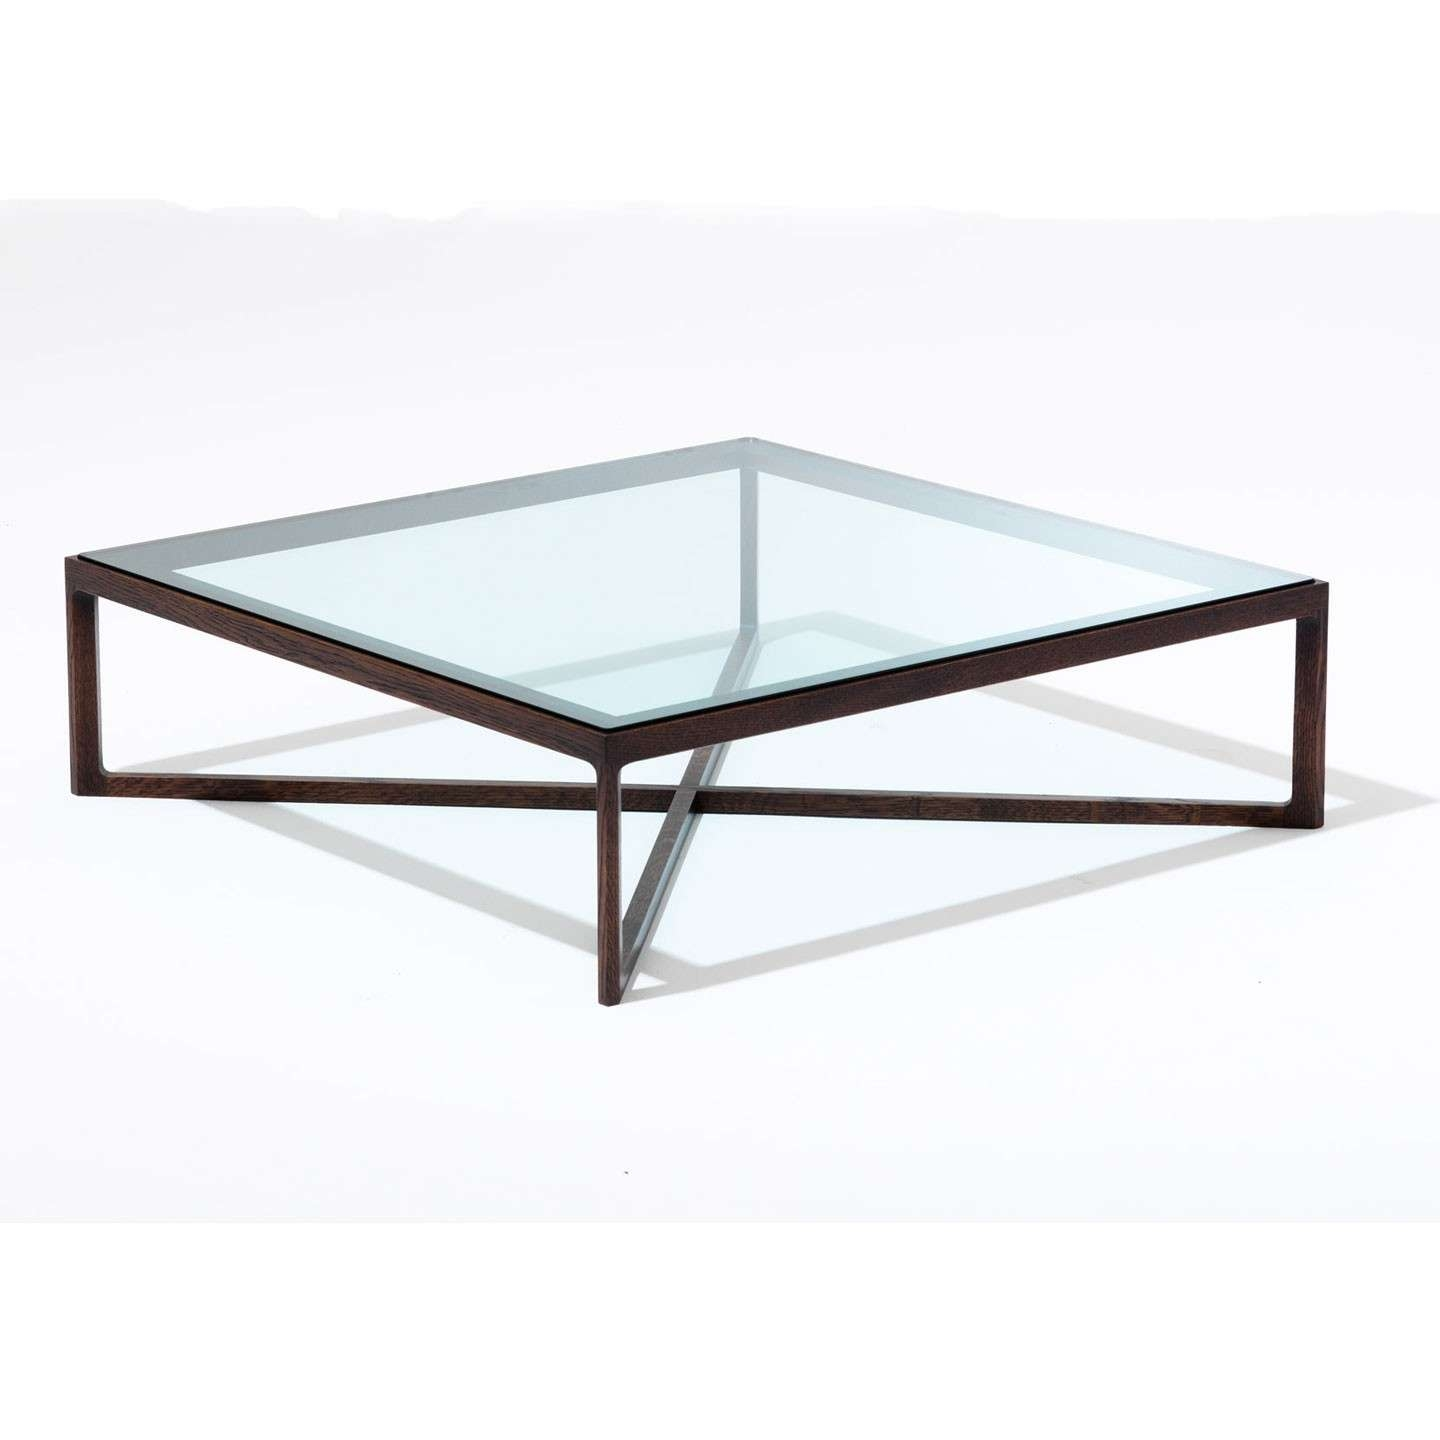 Most Popular Coffee Tables Glass And Metal In Coffee Tables : Charming Dark Brown Square Rustic Glass Wooden (View 5 of 20)